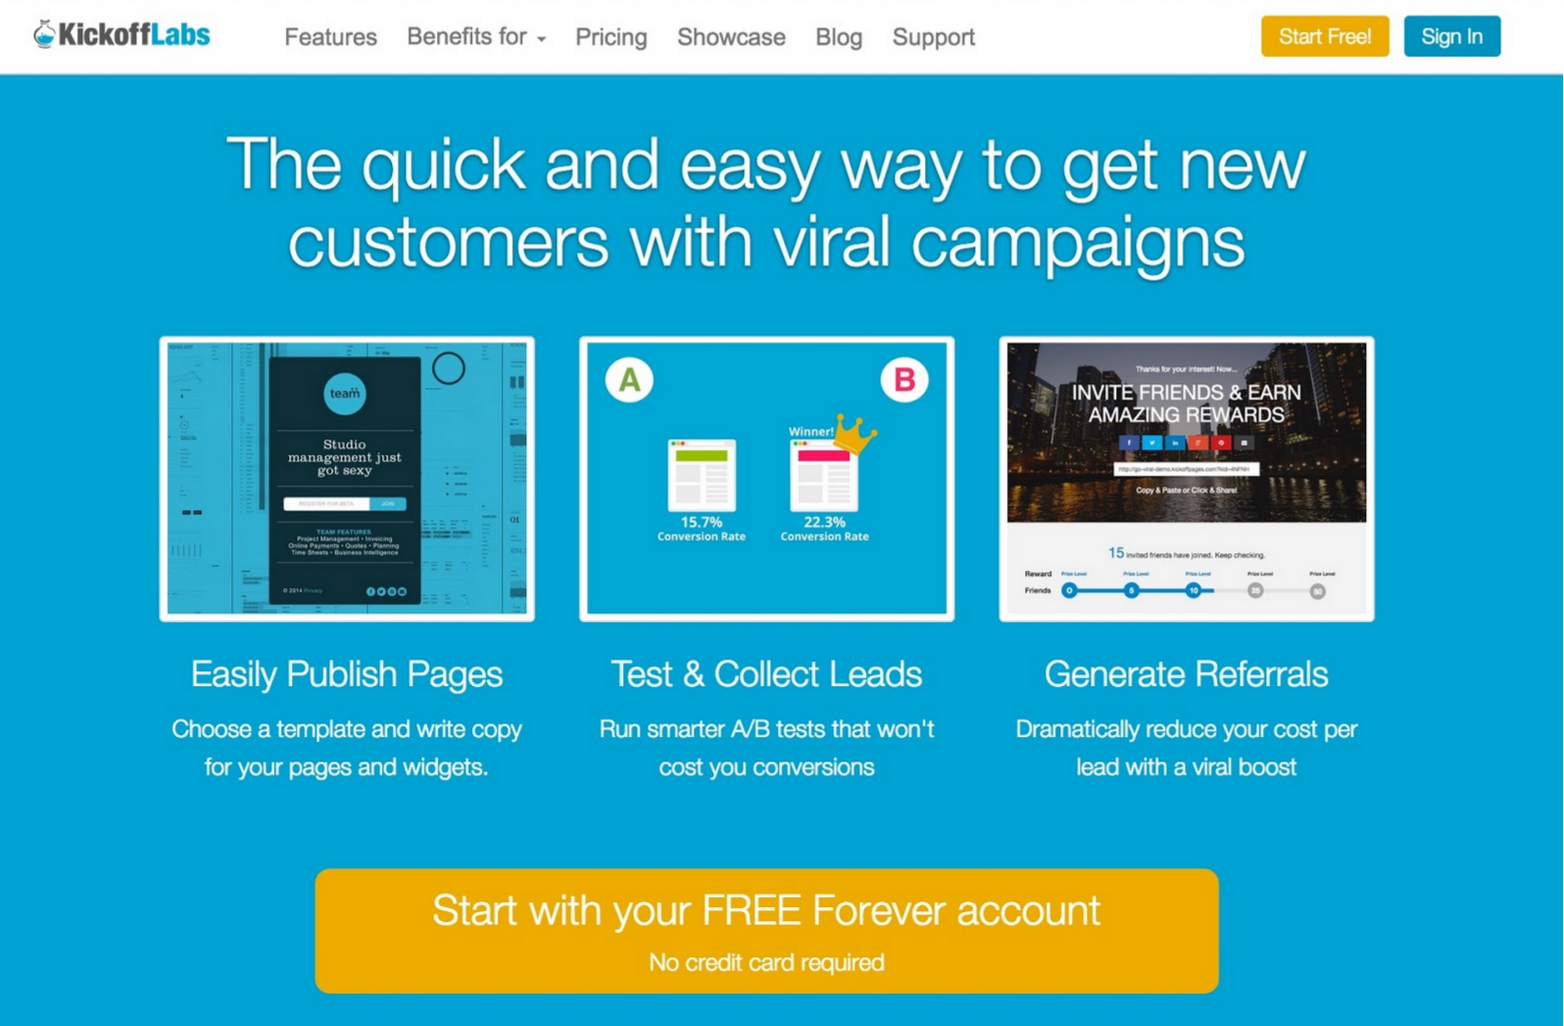 KickoffLabs has a unique feature to help you reward strong influencers, offering automated emails to target them.